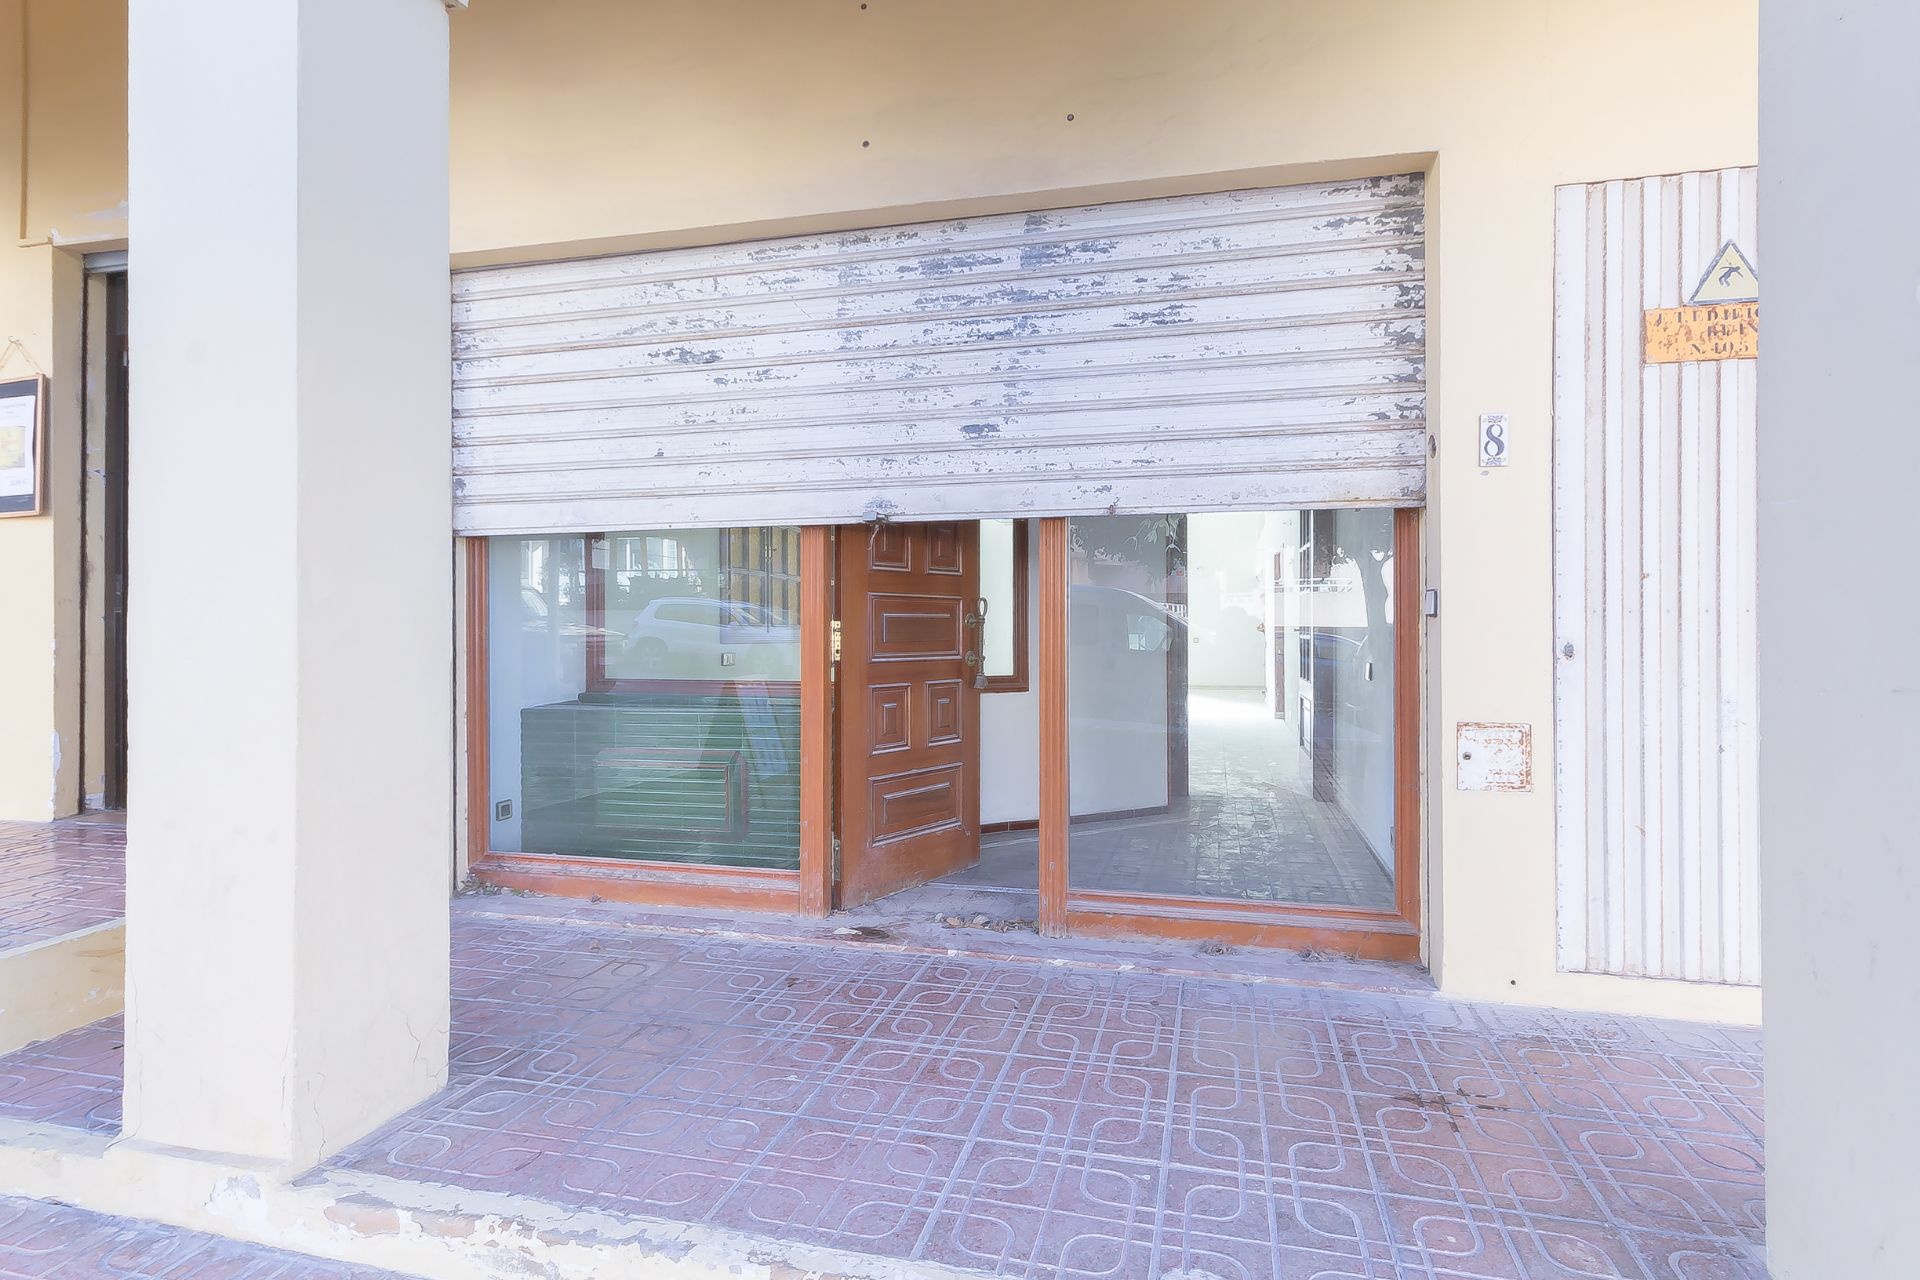 Commercial property in Sant Antoni de Portmany, CENTRO DE SAN ANTONIO, for sale